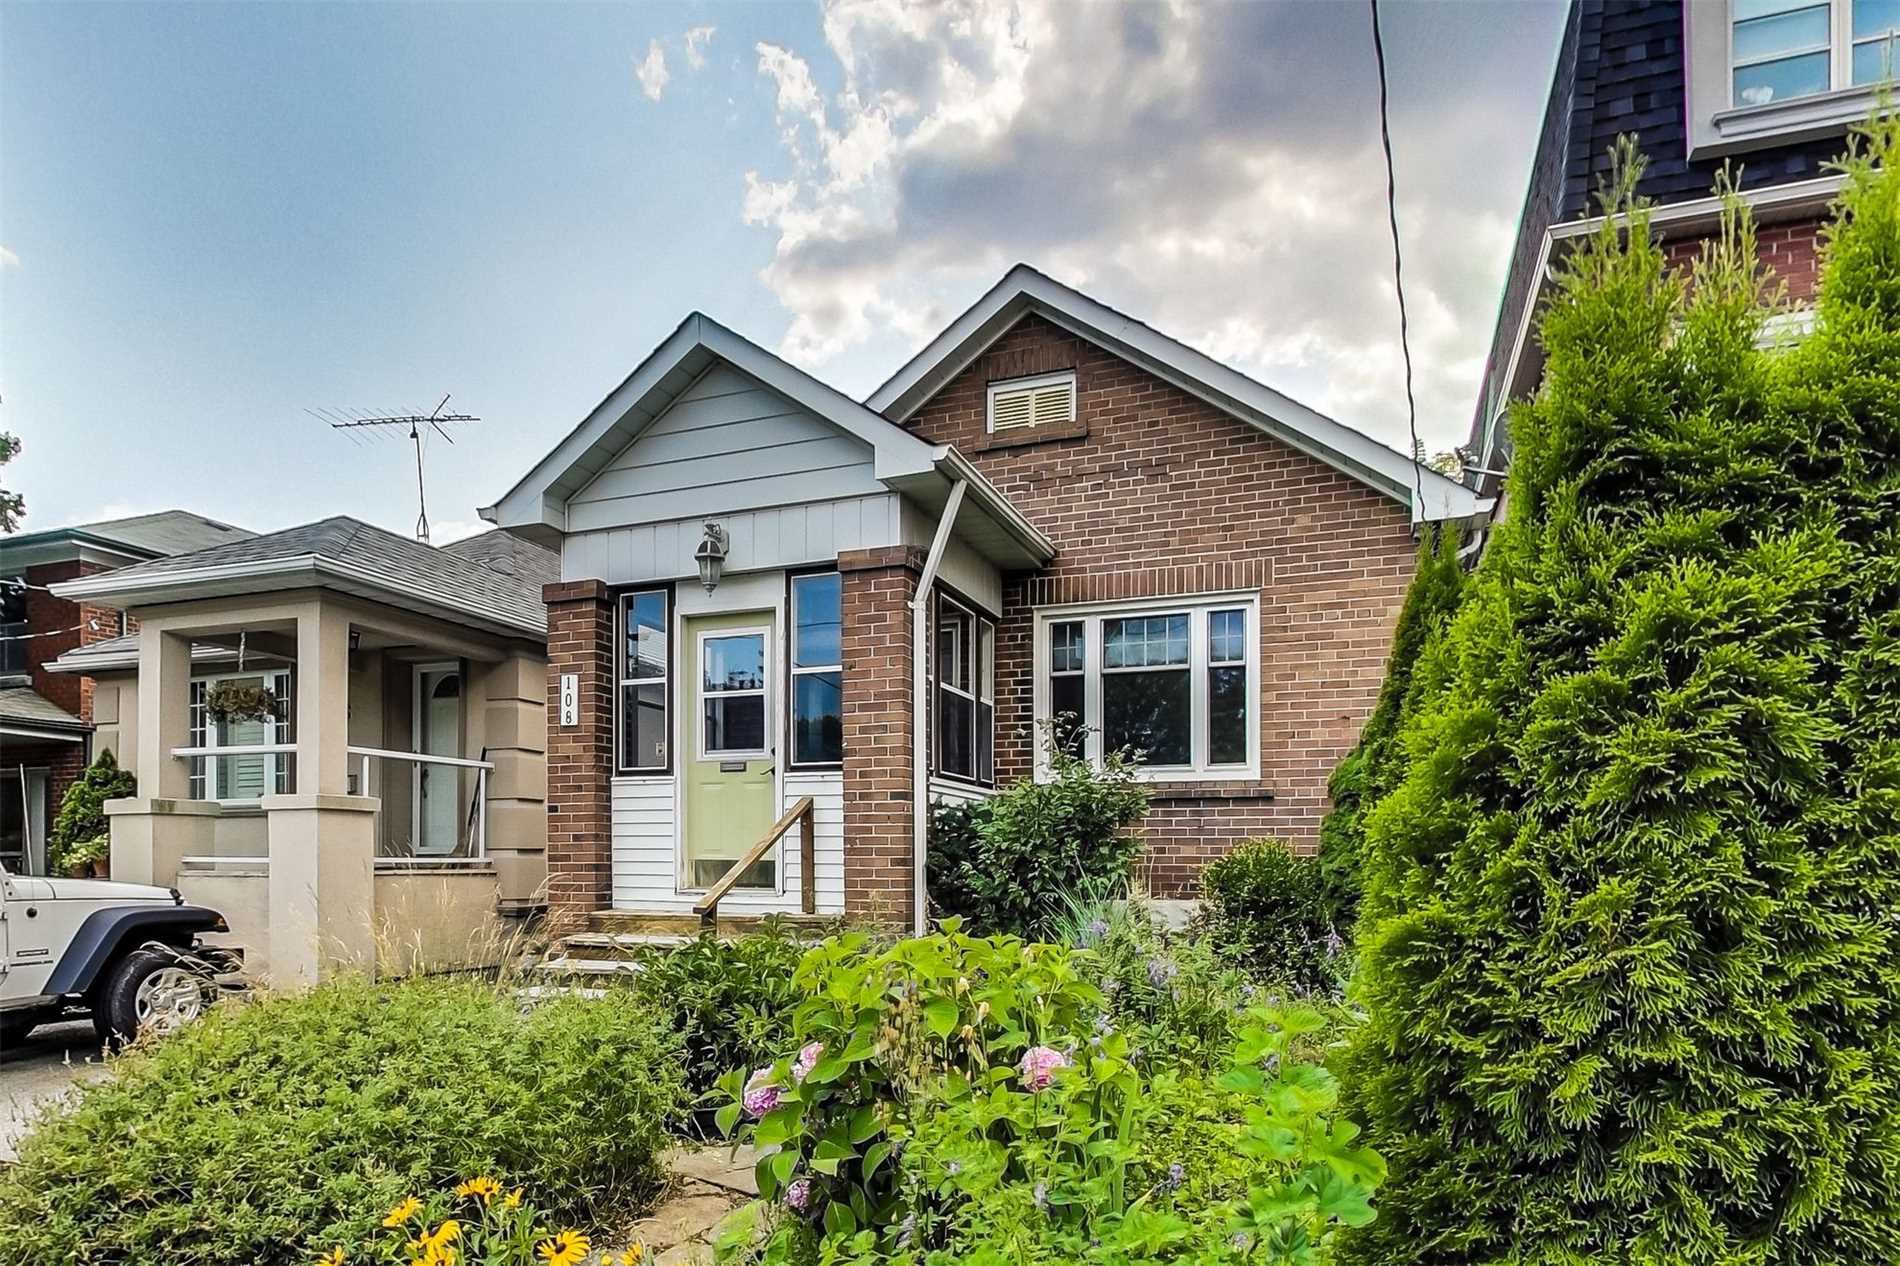 Main Photo: 108 Wesley Street in Toronto: Stonegate-Queensway House (Bungalow) for sale (Toronto W07)  : MLS®# W4532458